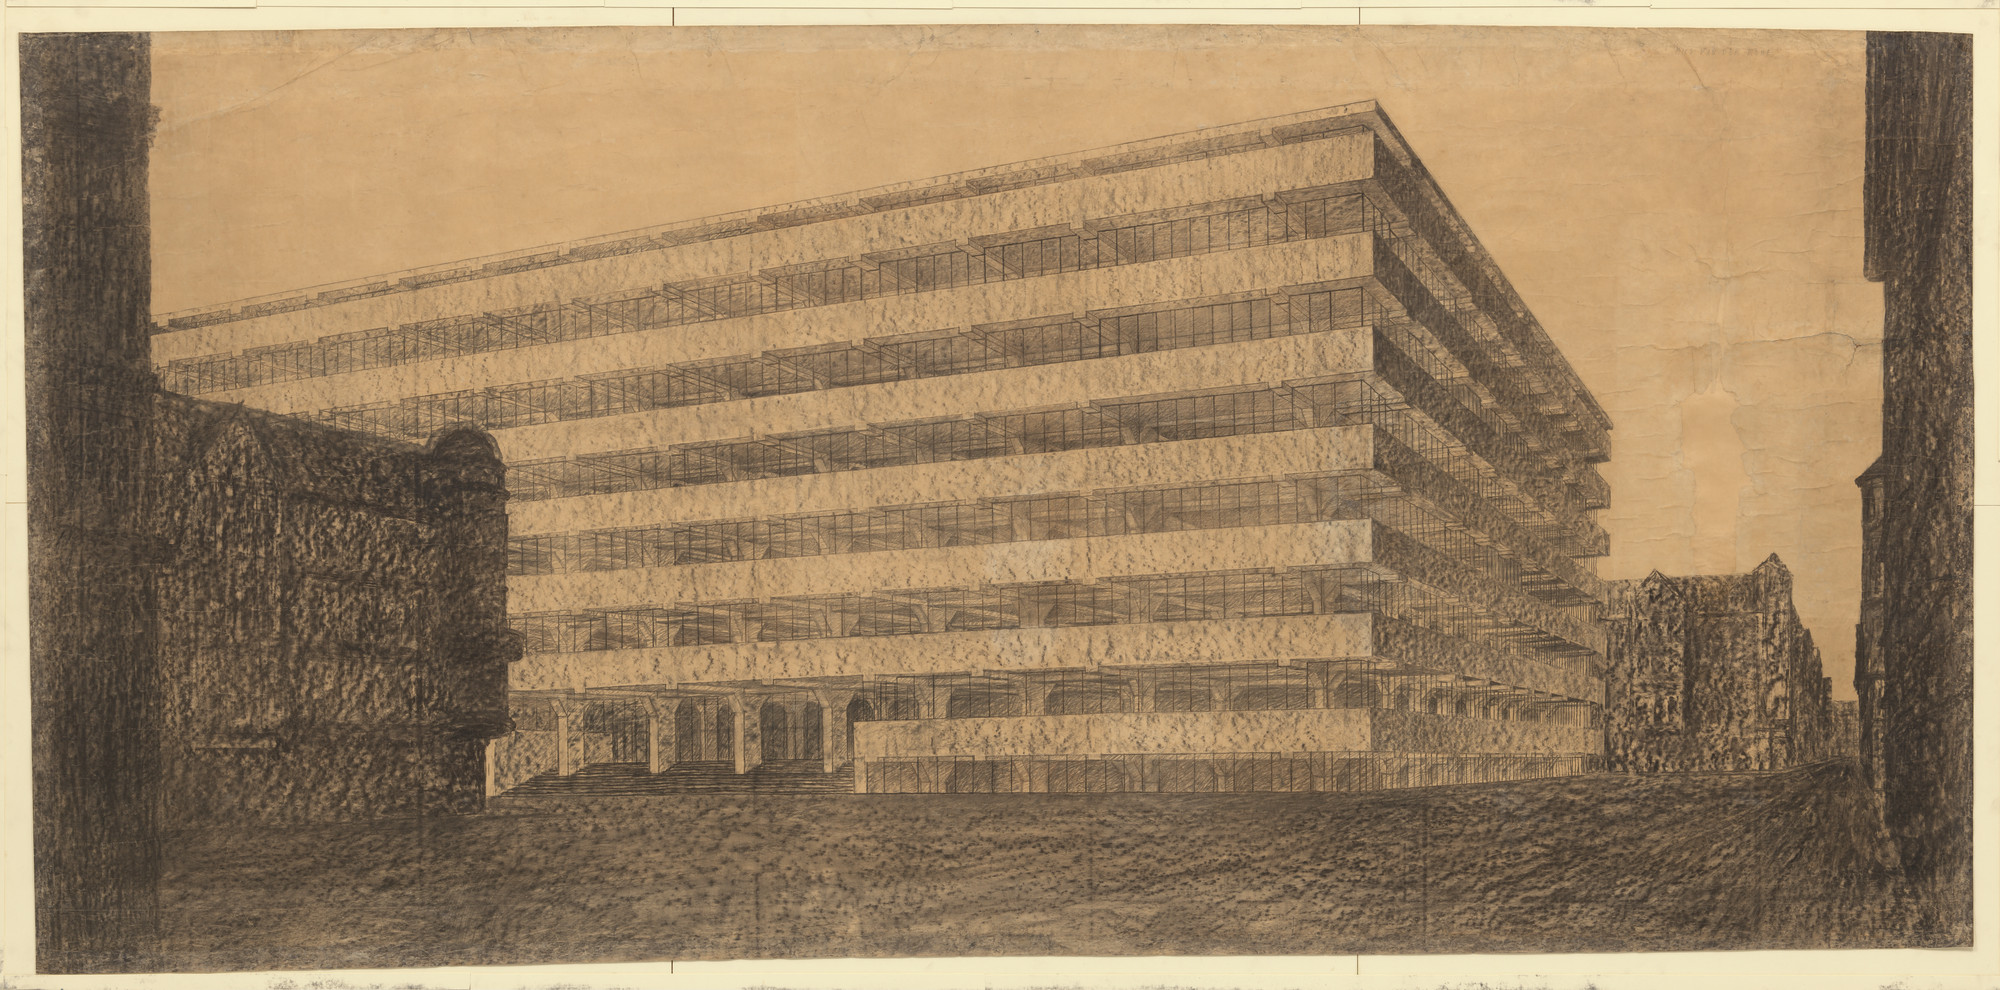 Ludwig Mies van der Rohe. Concrete Office Building Project, Berlin, Germany (Exterior perspective). 1923